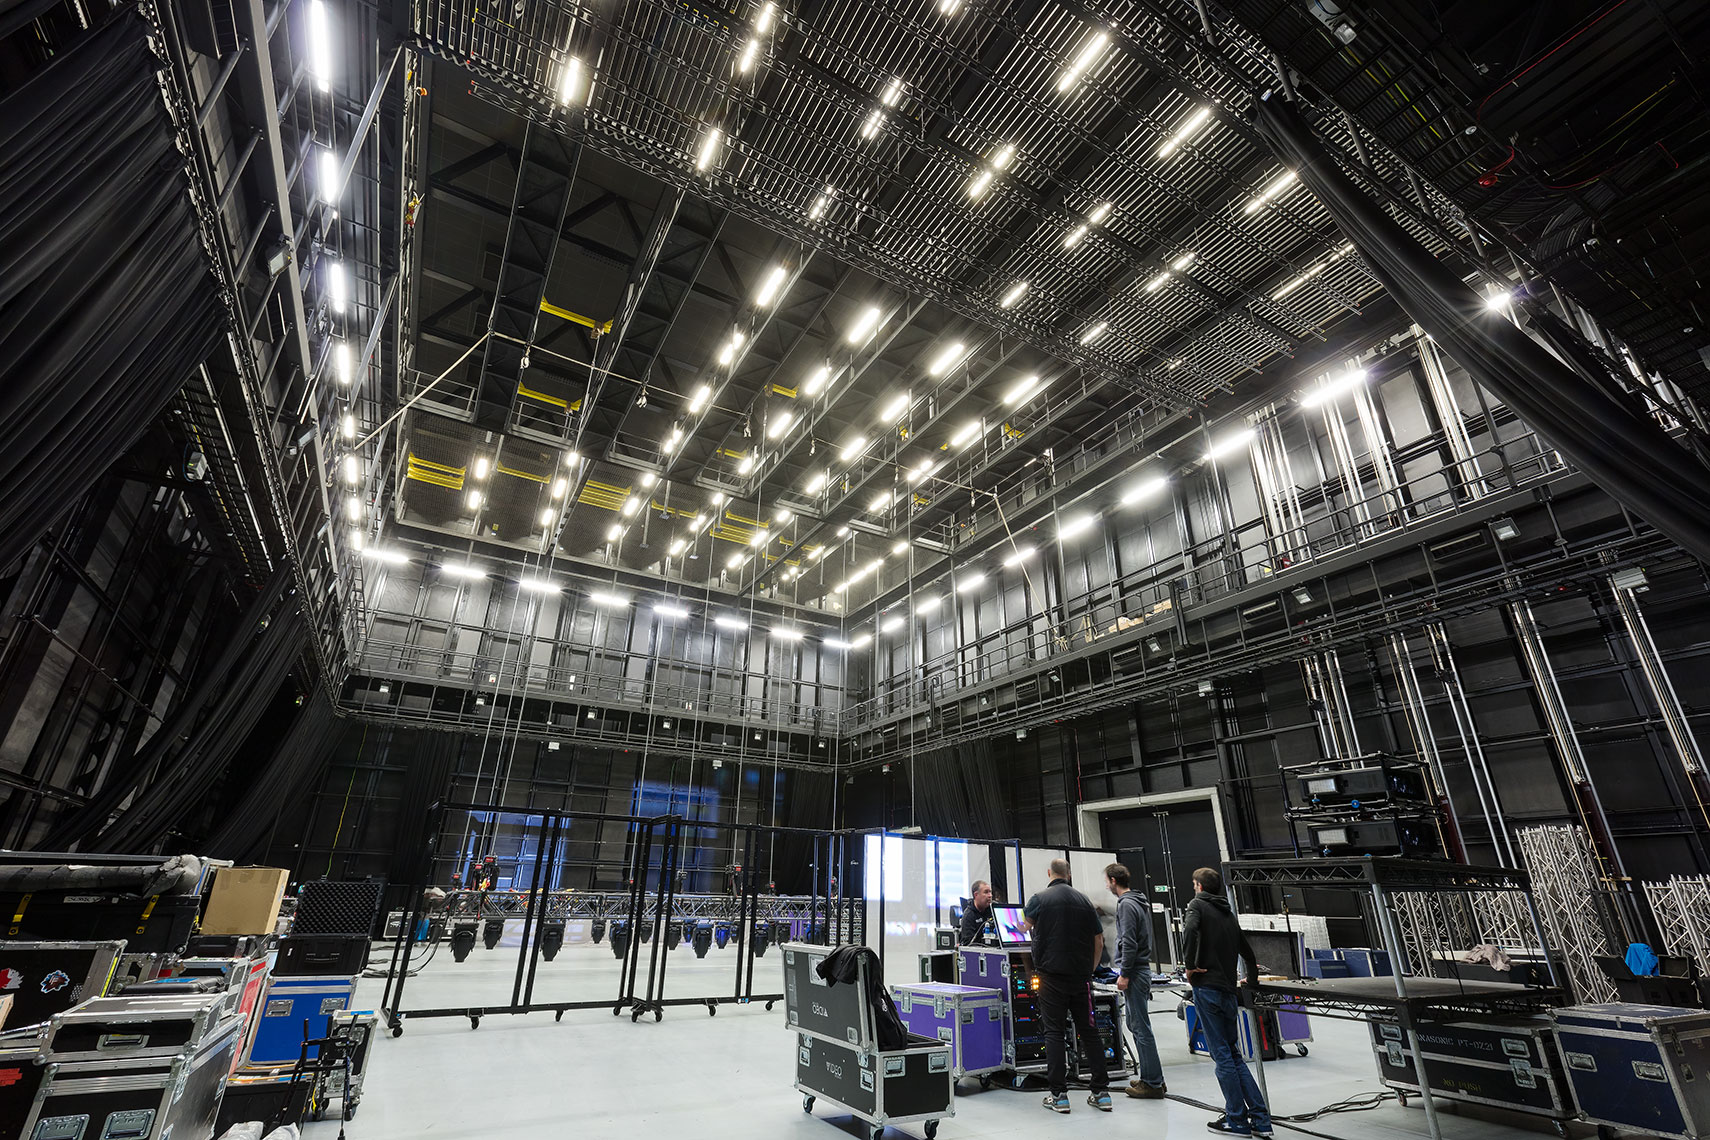 Television studio rehearsal space with technical equipment around the perimeter